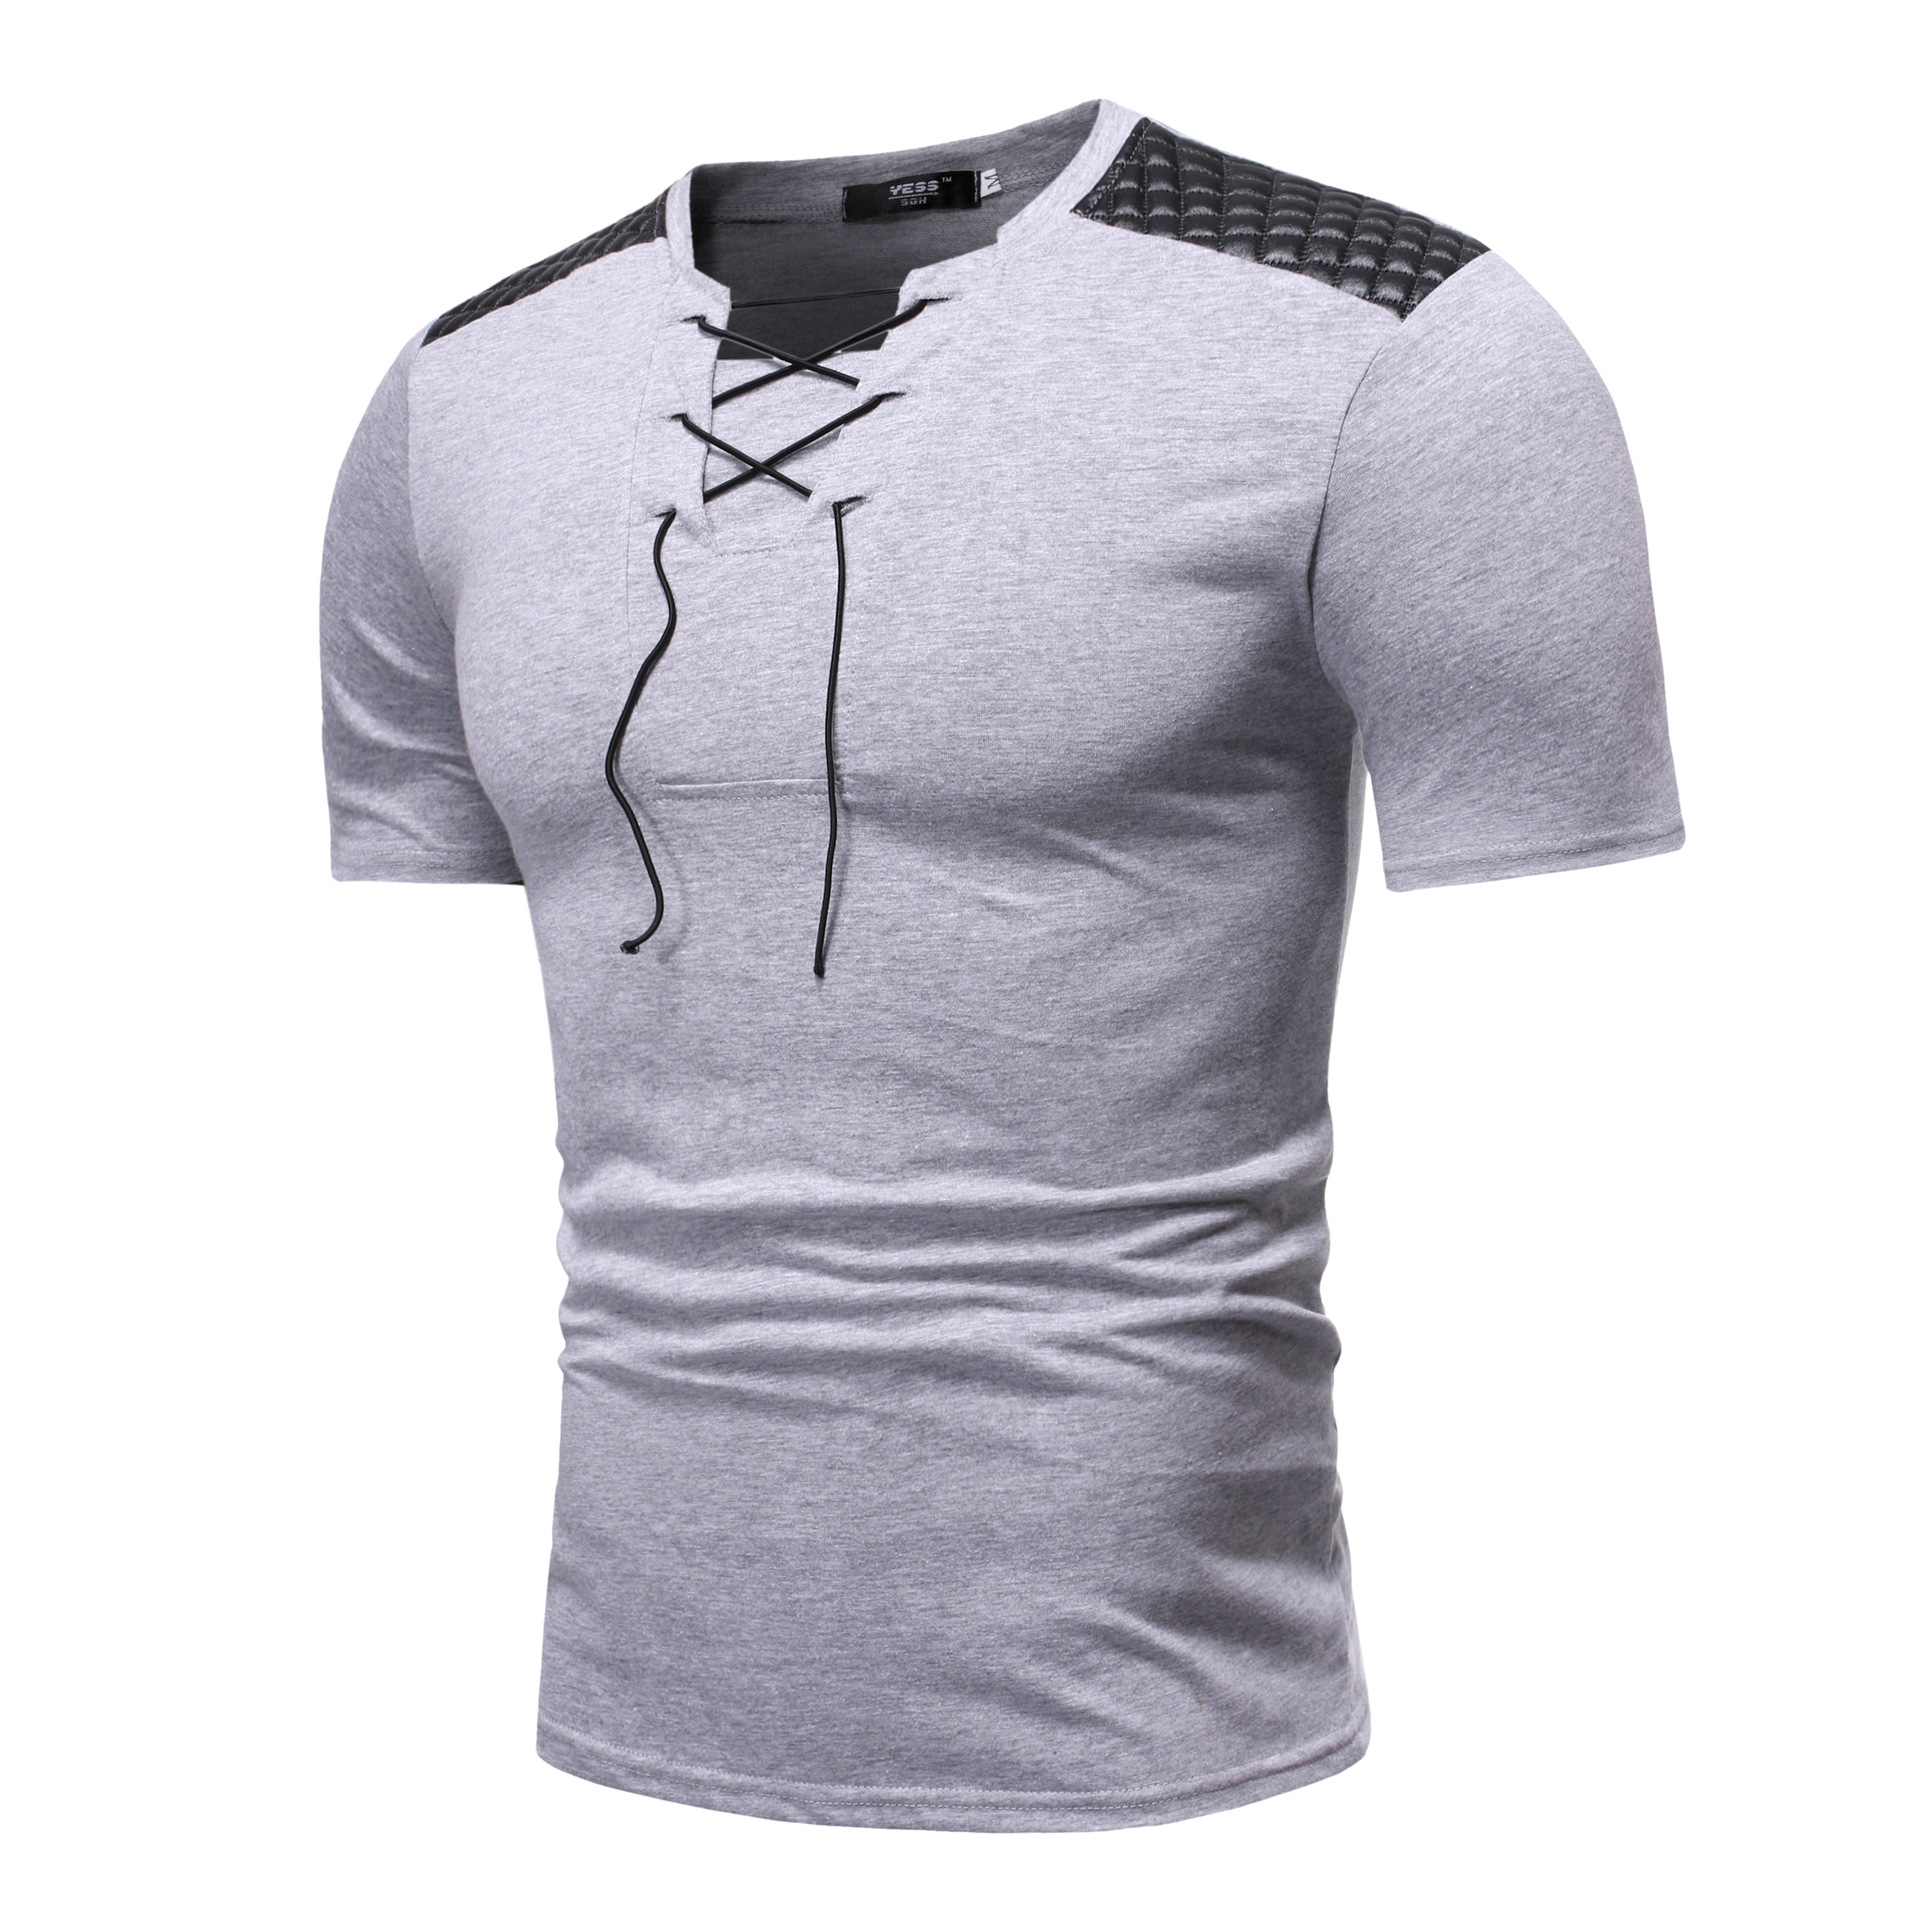 Quick sell through wish new men's V-neck lace up short sleeve T-shirt shoulder panel design European casual thin T-shirt